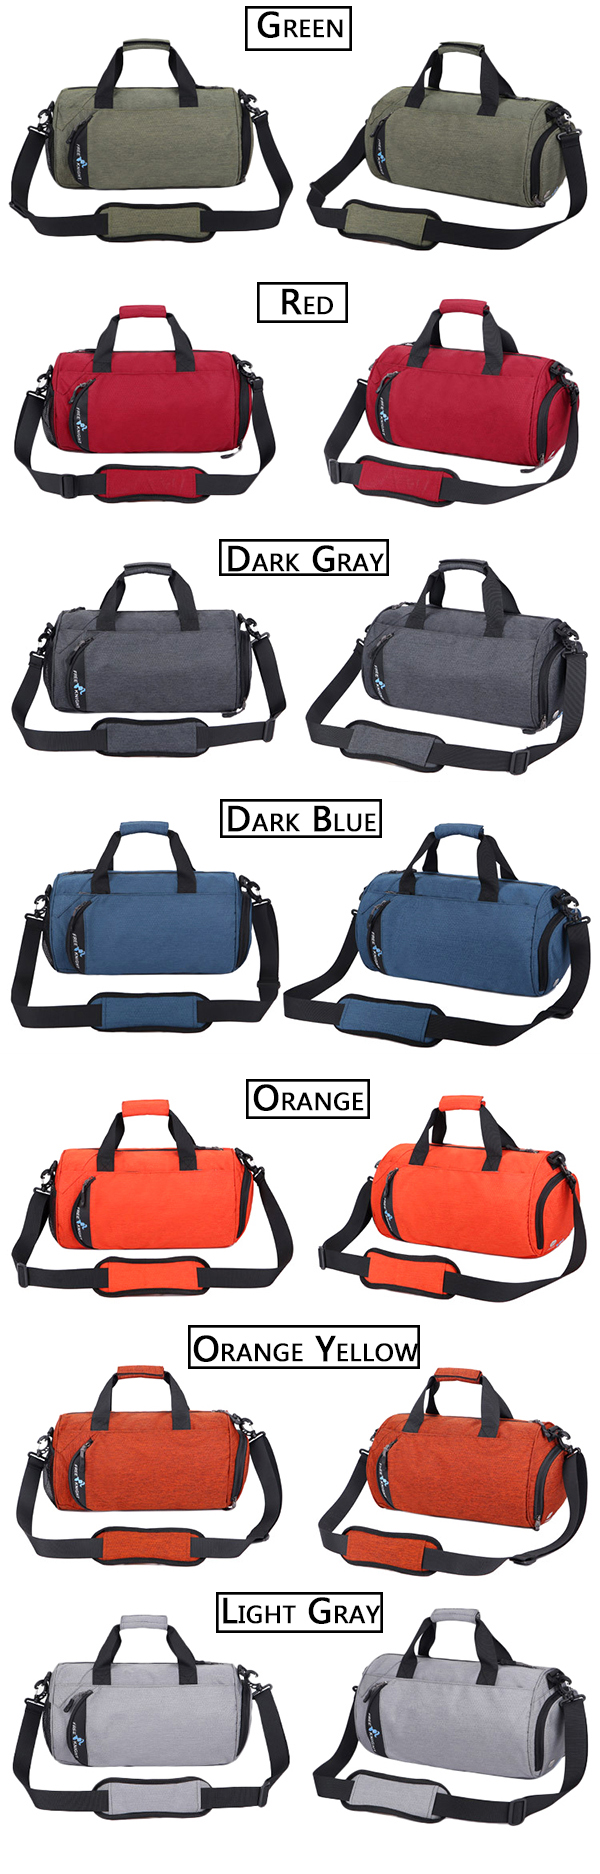 Nylon Large Capacity Waterproof Leisure Travel Crossbody Bag Handbag Fitness Outdoor Sports Bag